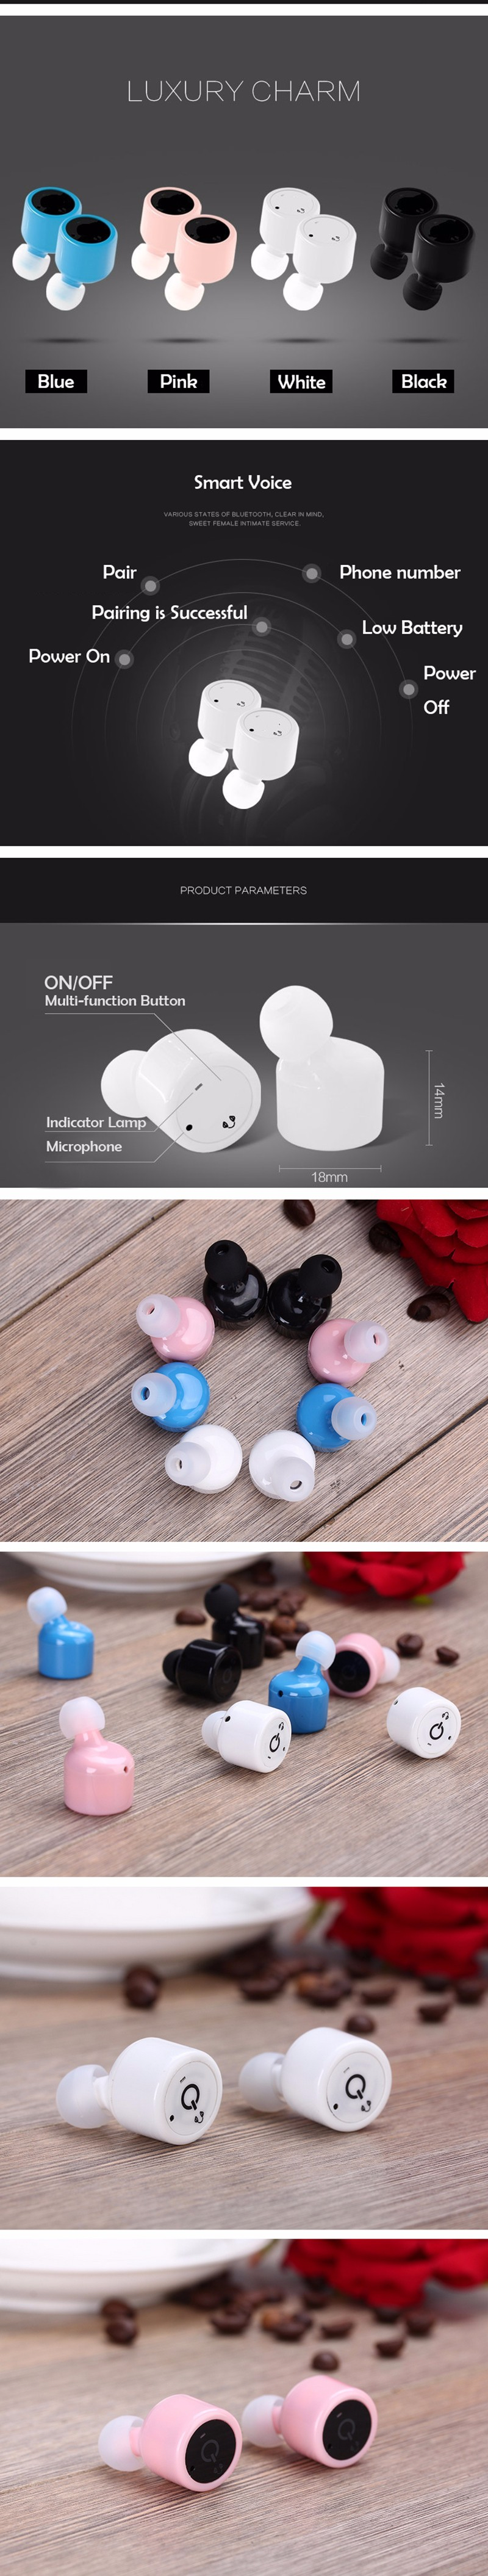 Ubit X1T Twins True Wireless Bluetooth Earphone Smart Mini Double In-Ear Stereo Music Earphones Earbuds With MIC Voice Prompt